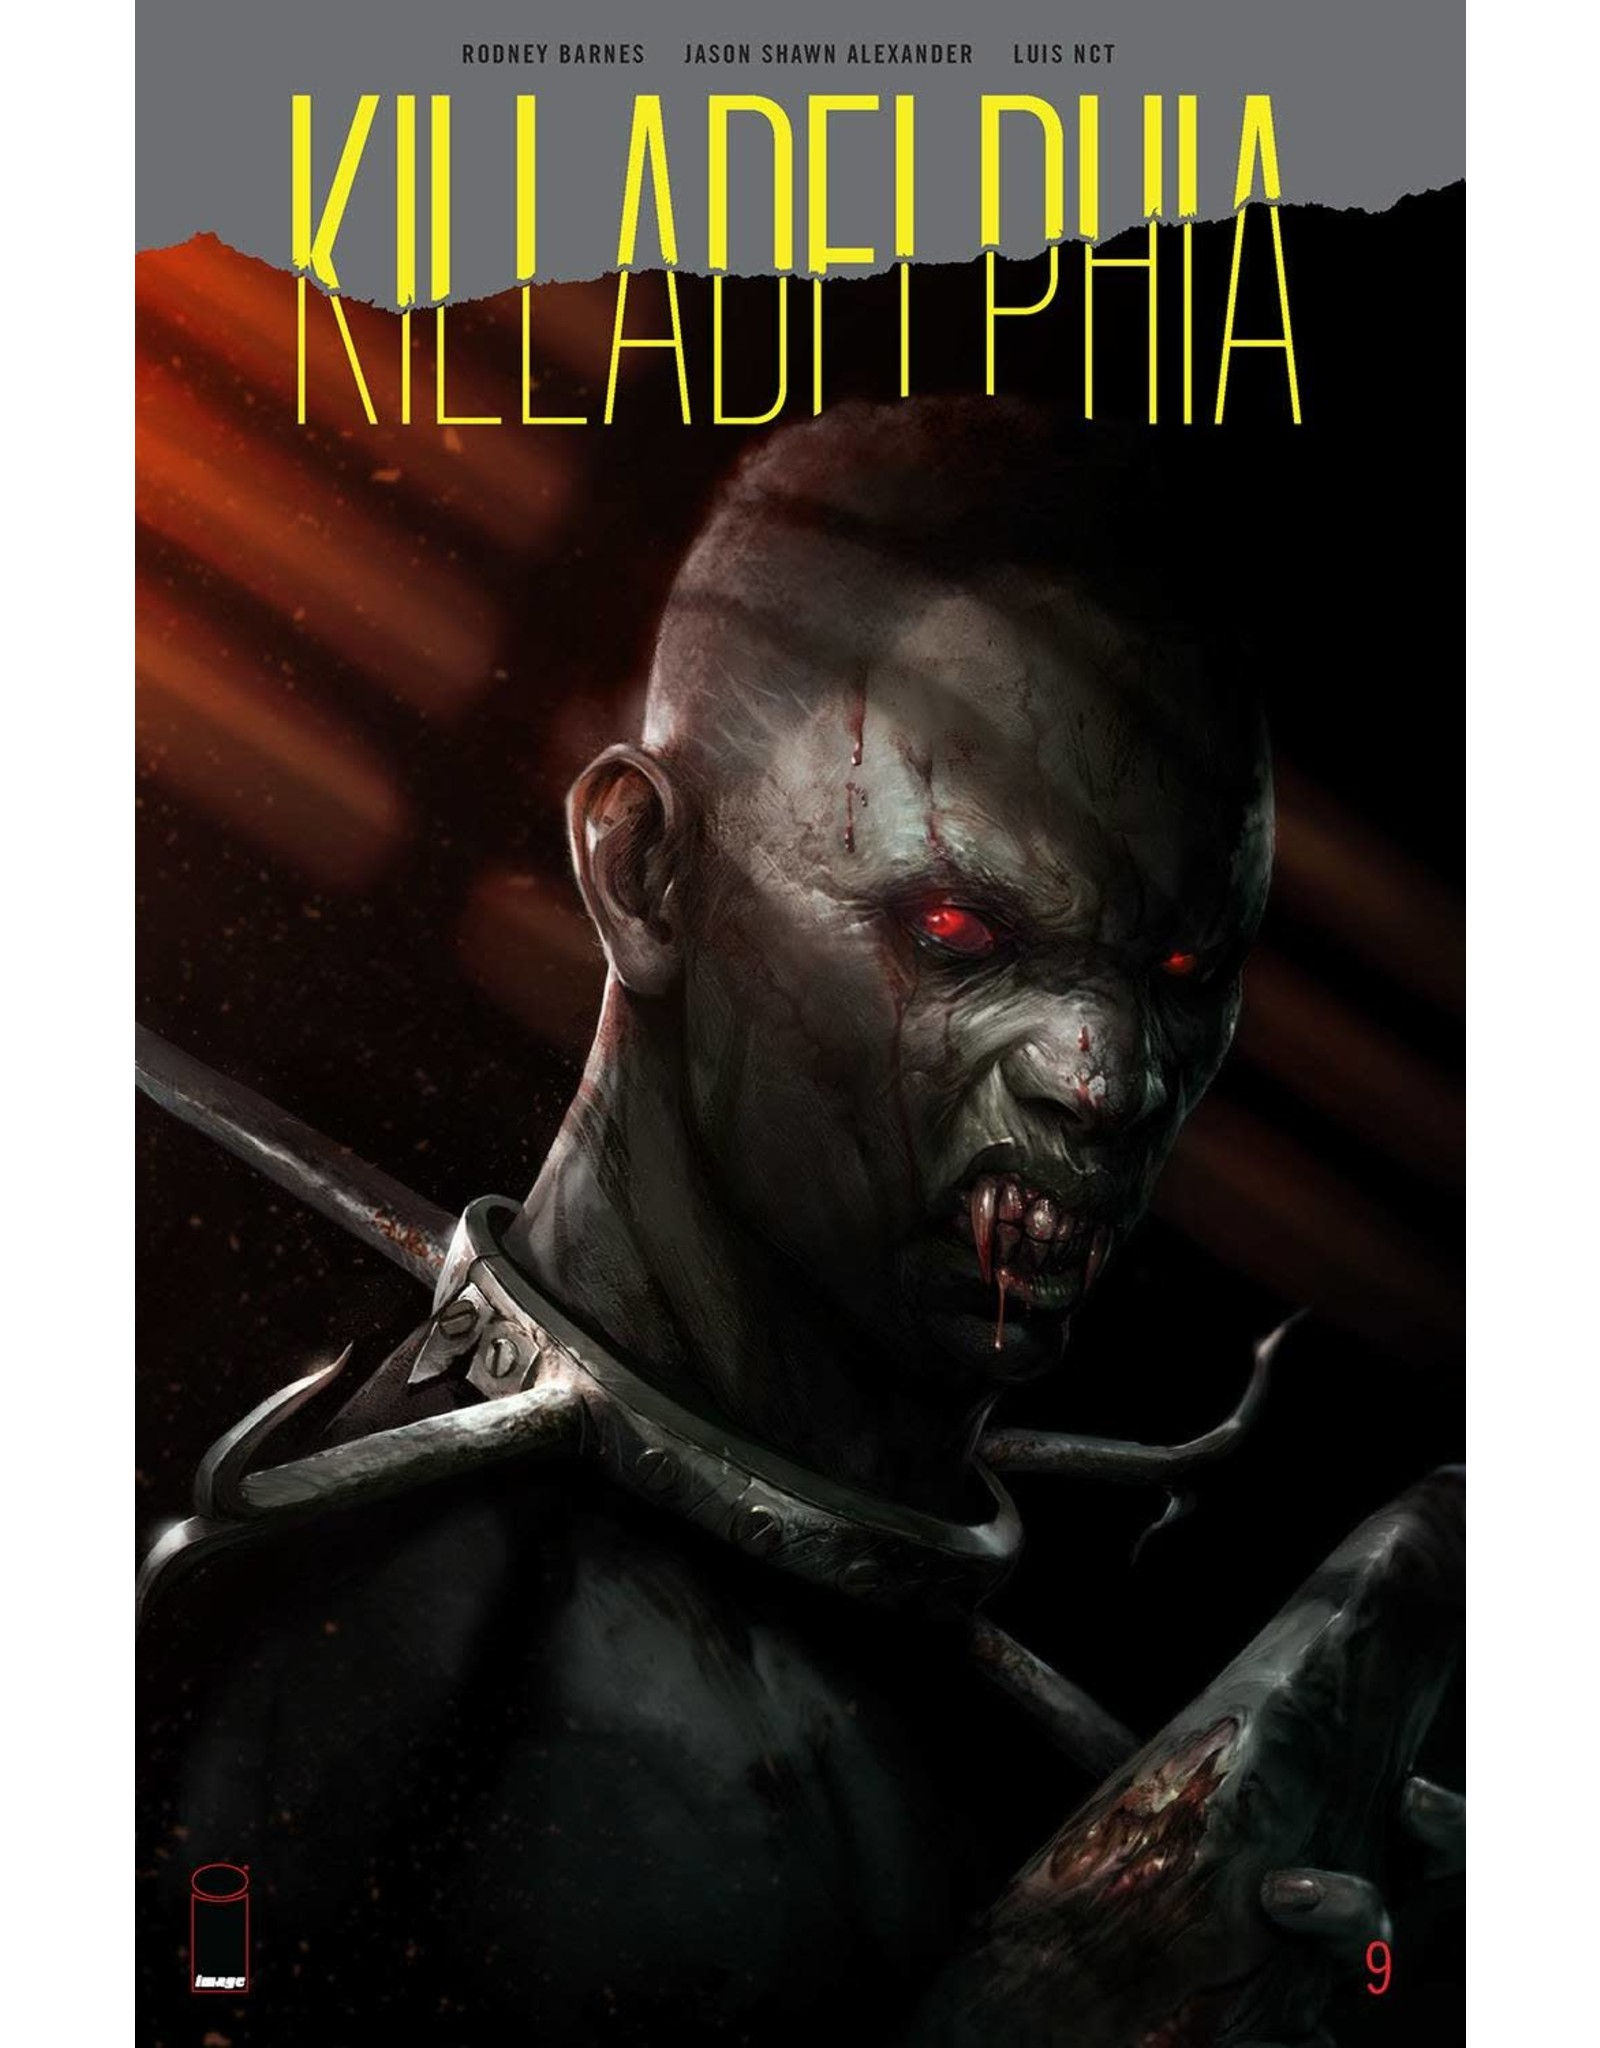 Image Comics KILLADELPHIA #9 CVR B MATTINA (MR)